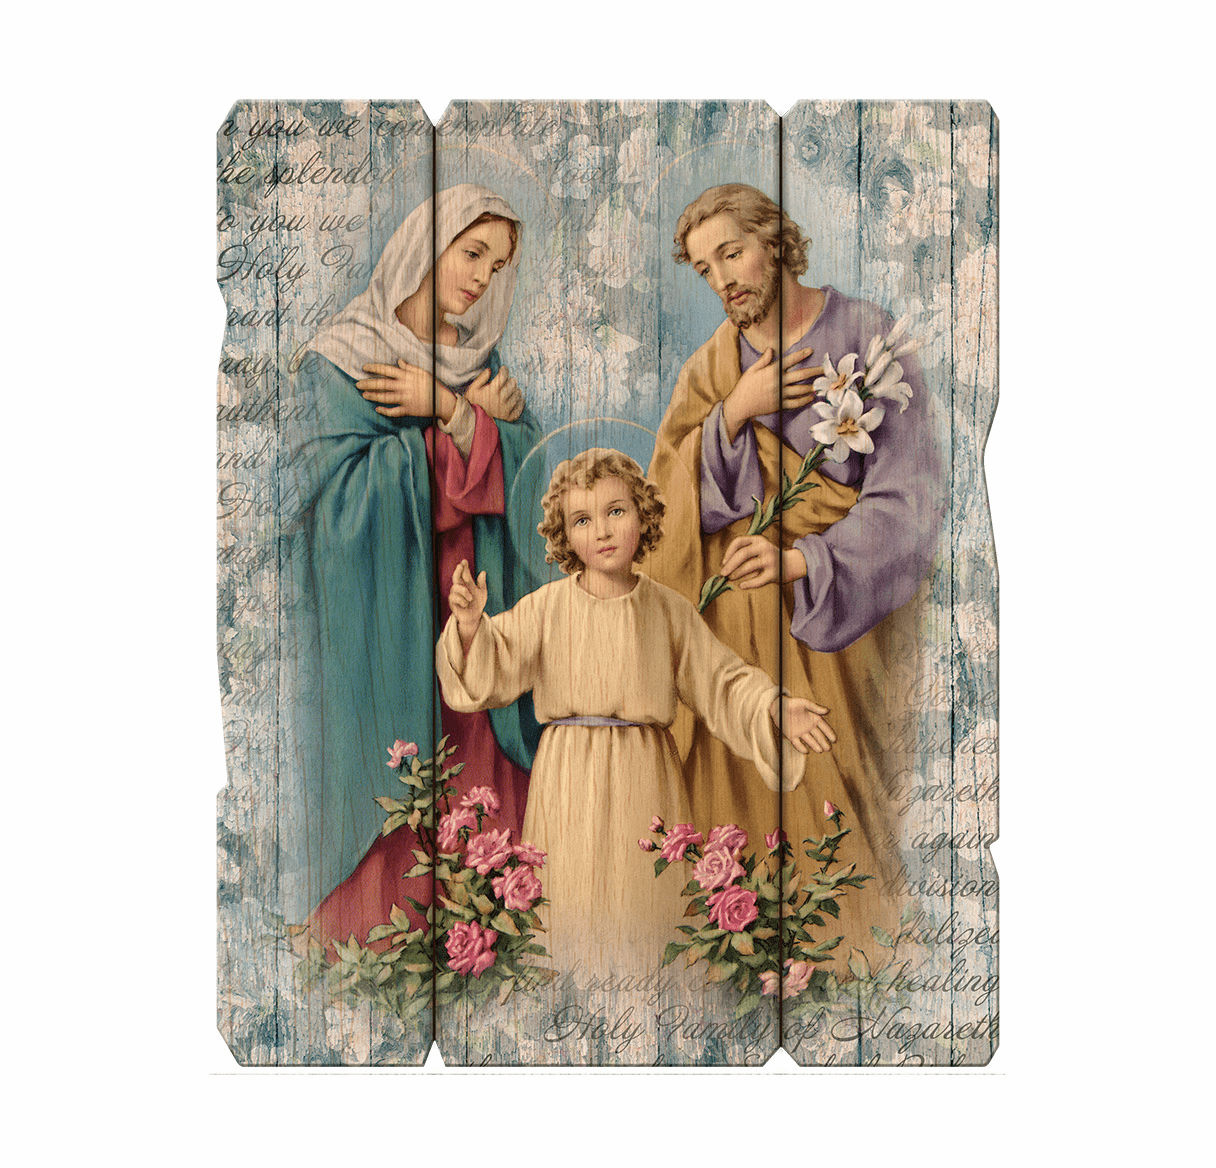 Hirten Holy Family Vintage Wooden Wall Plaque